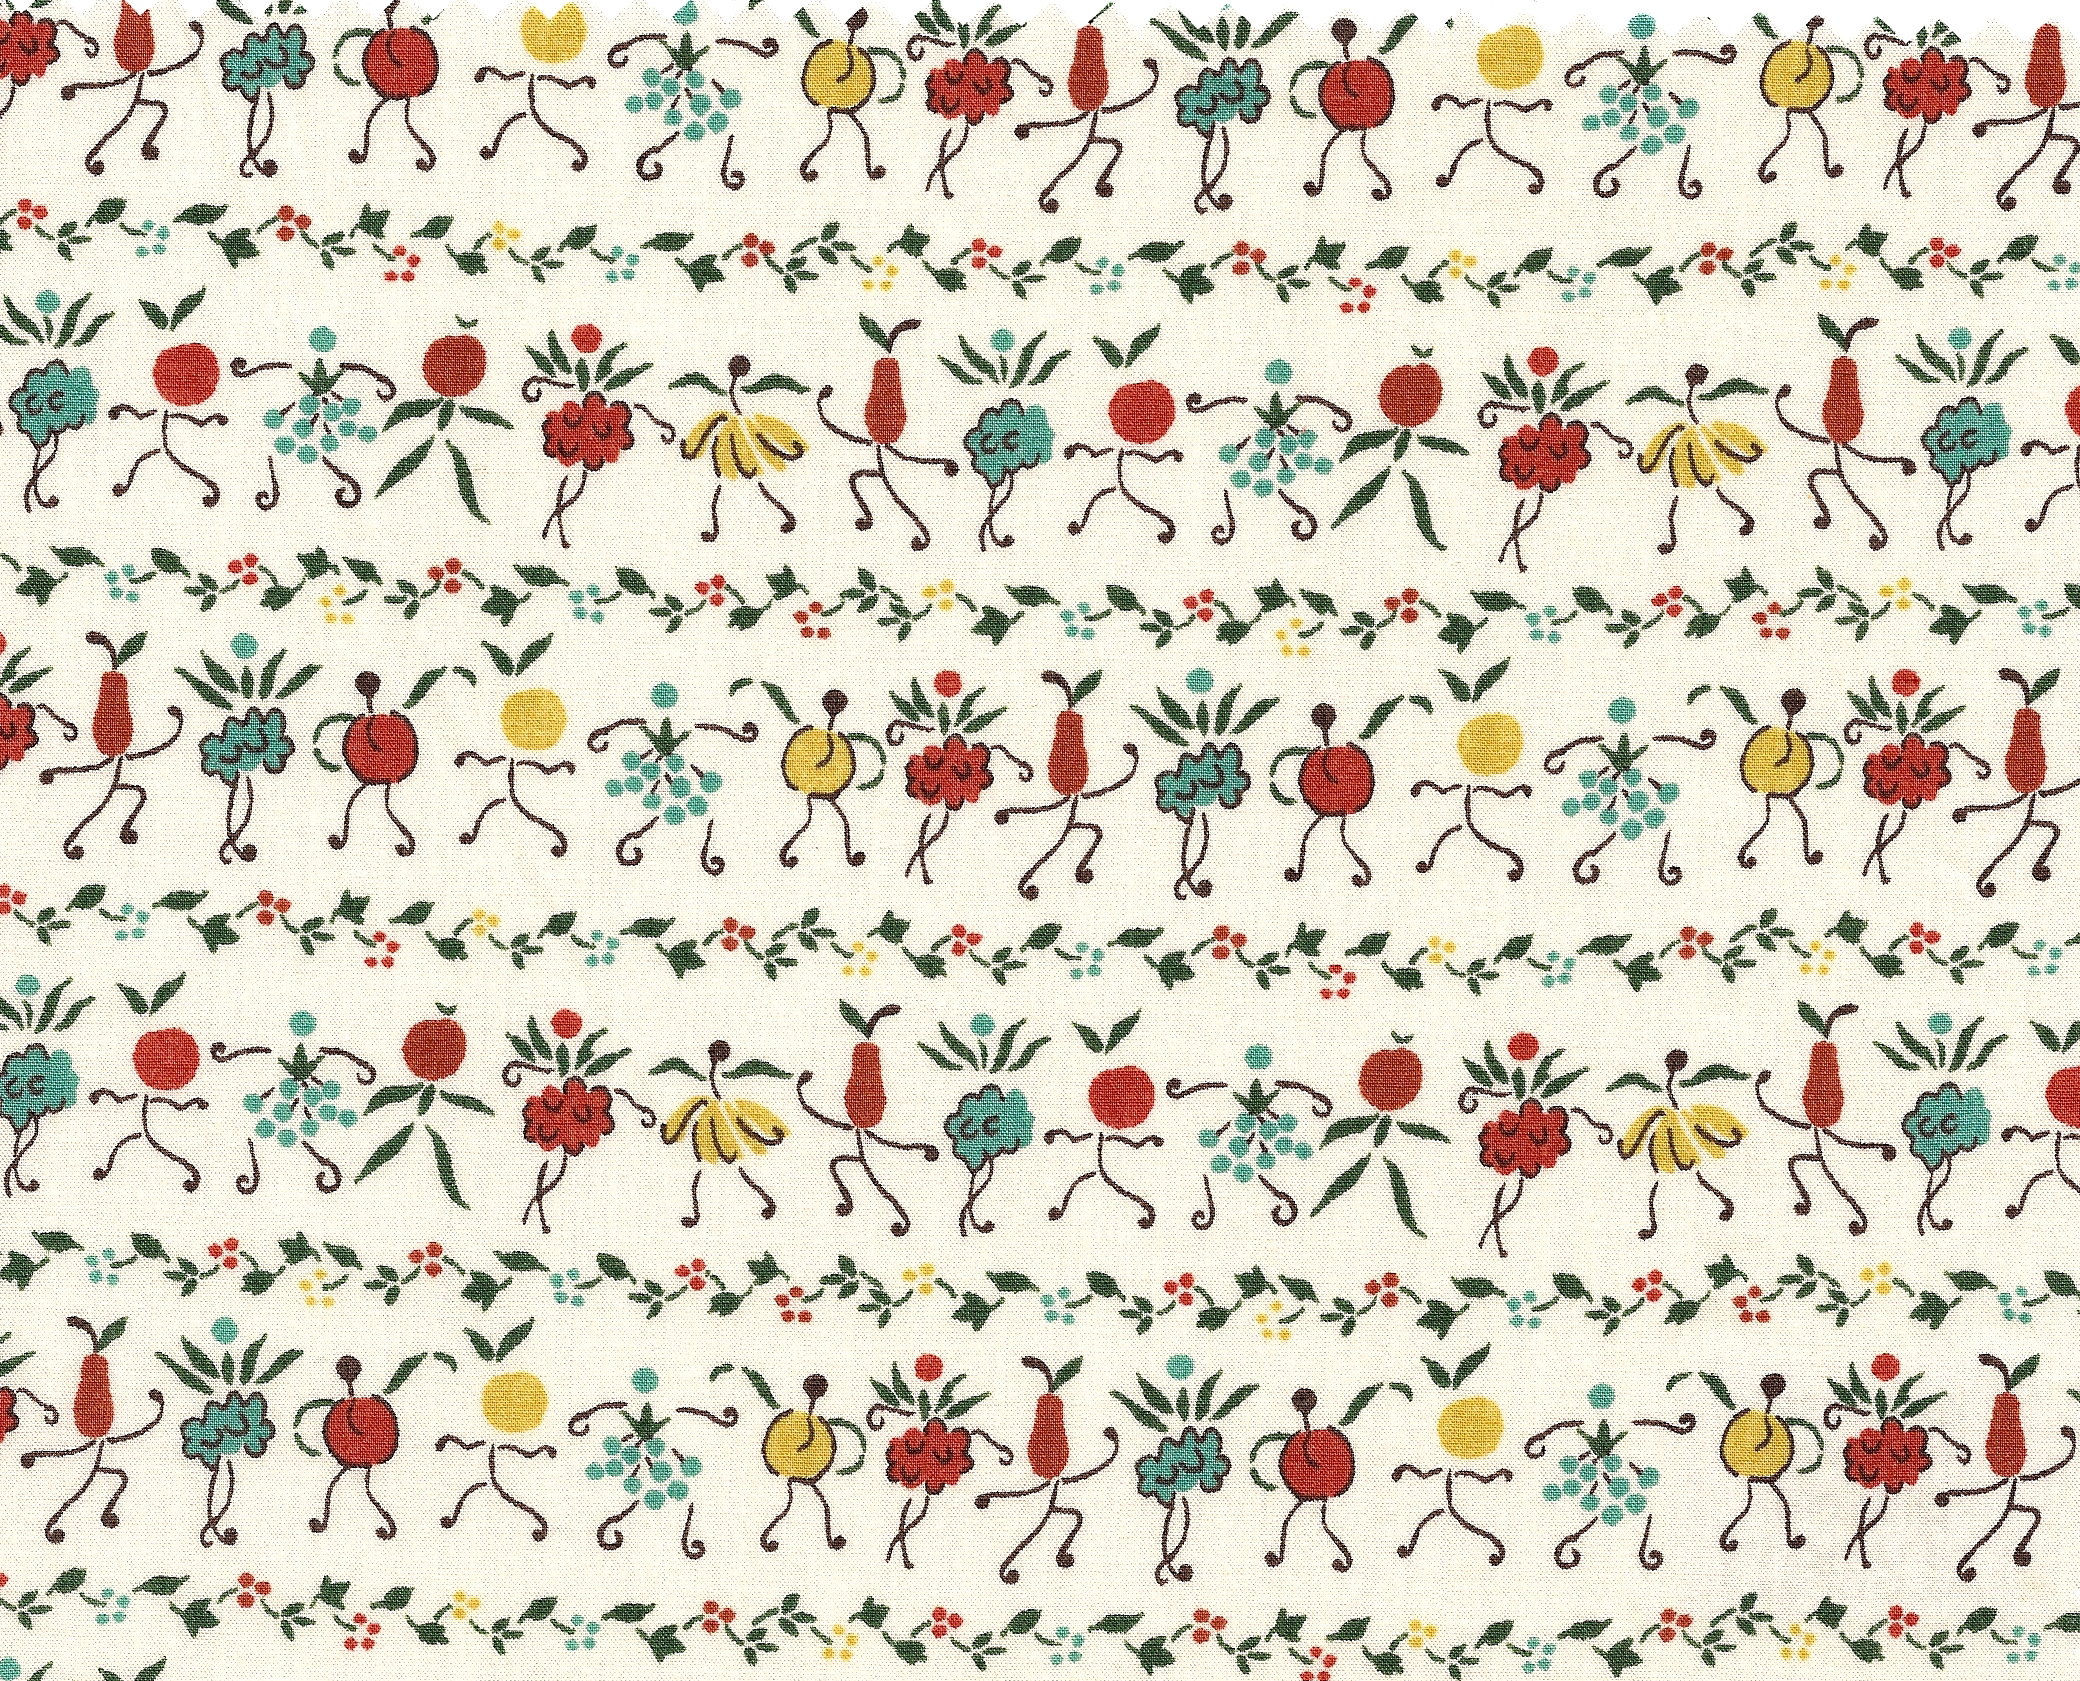 Digitally remastered 1930's Liberty print. Jolly sweet and eccentric.